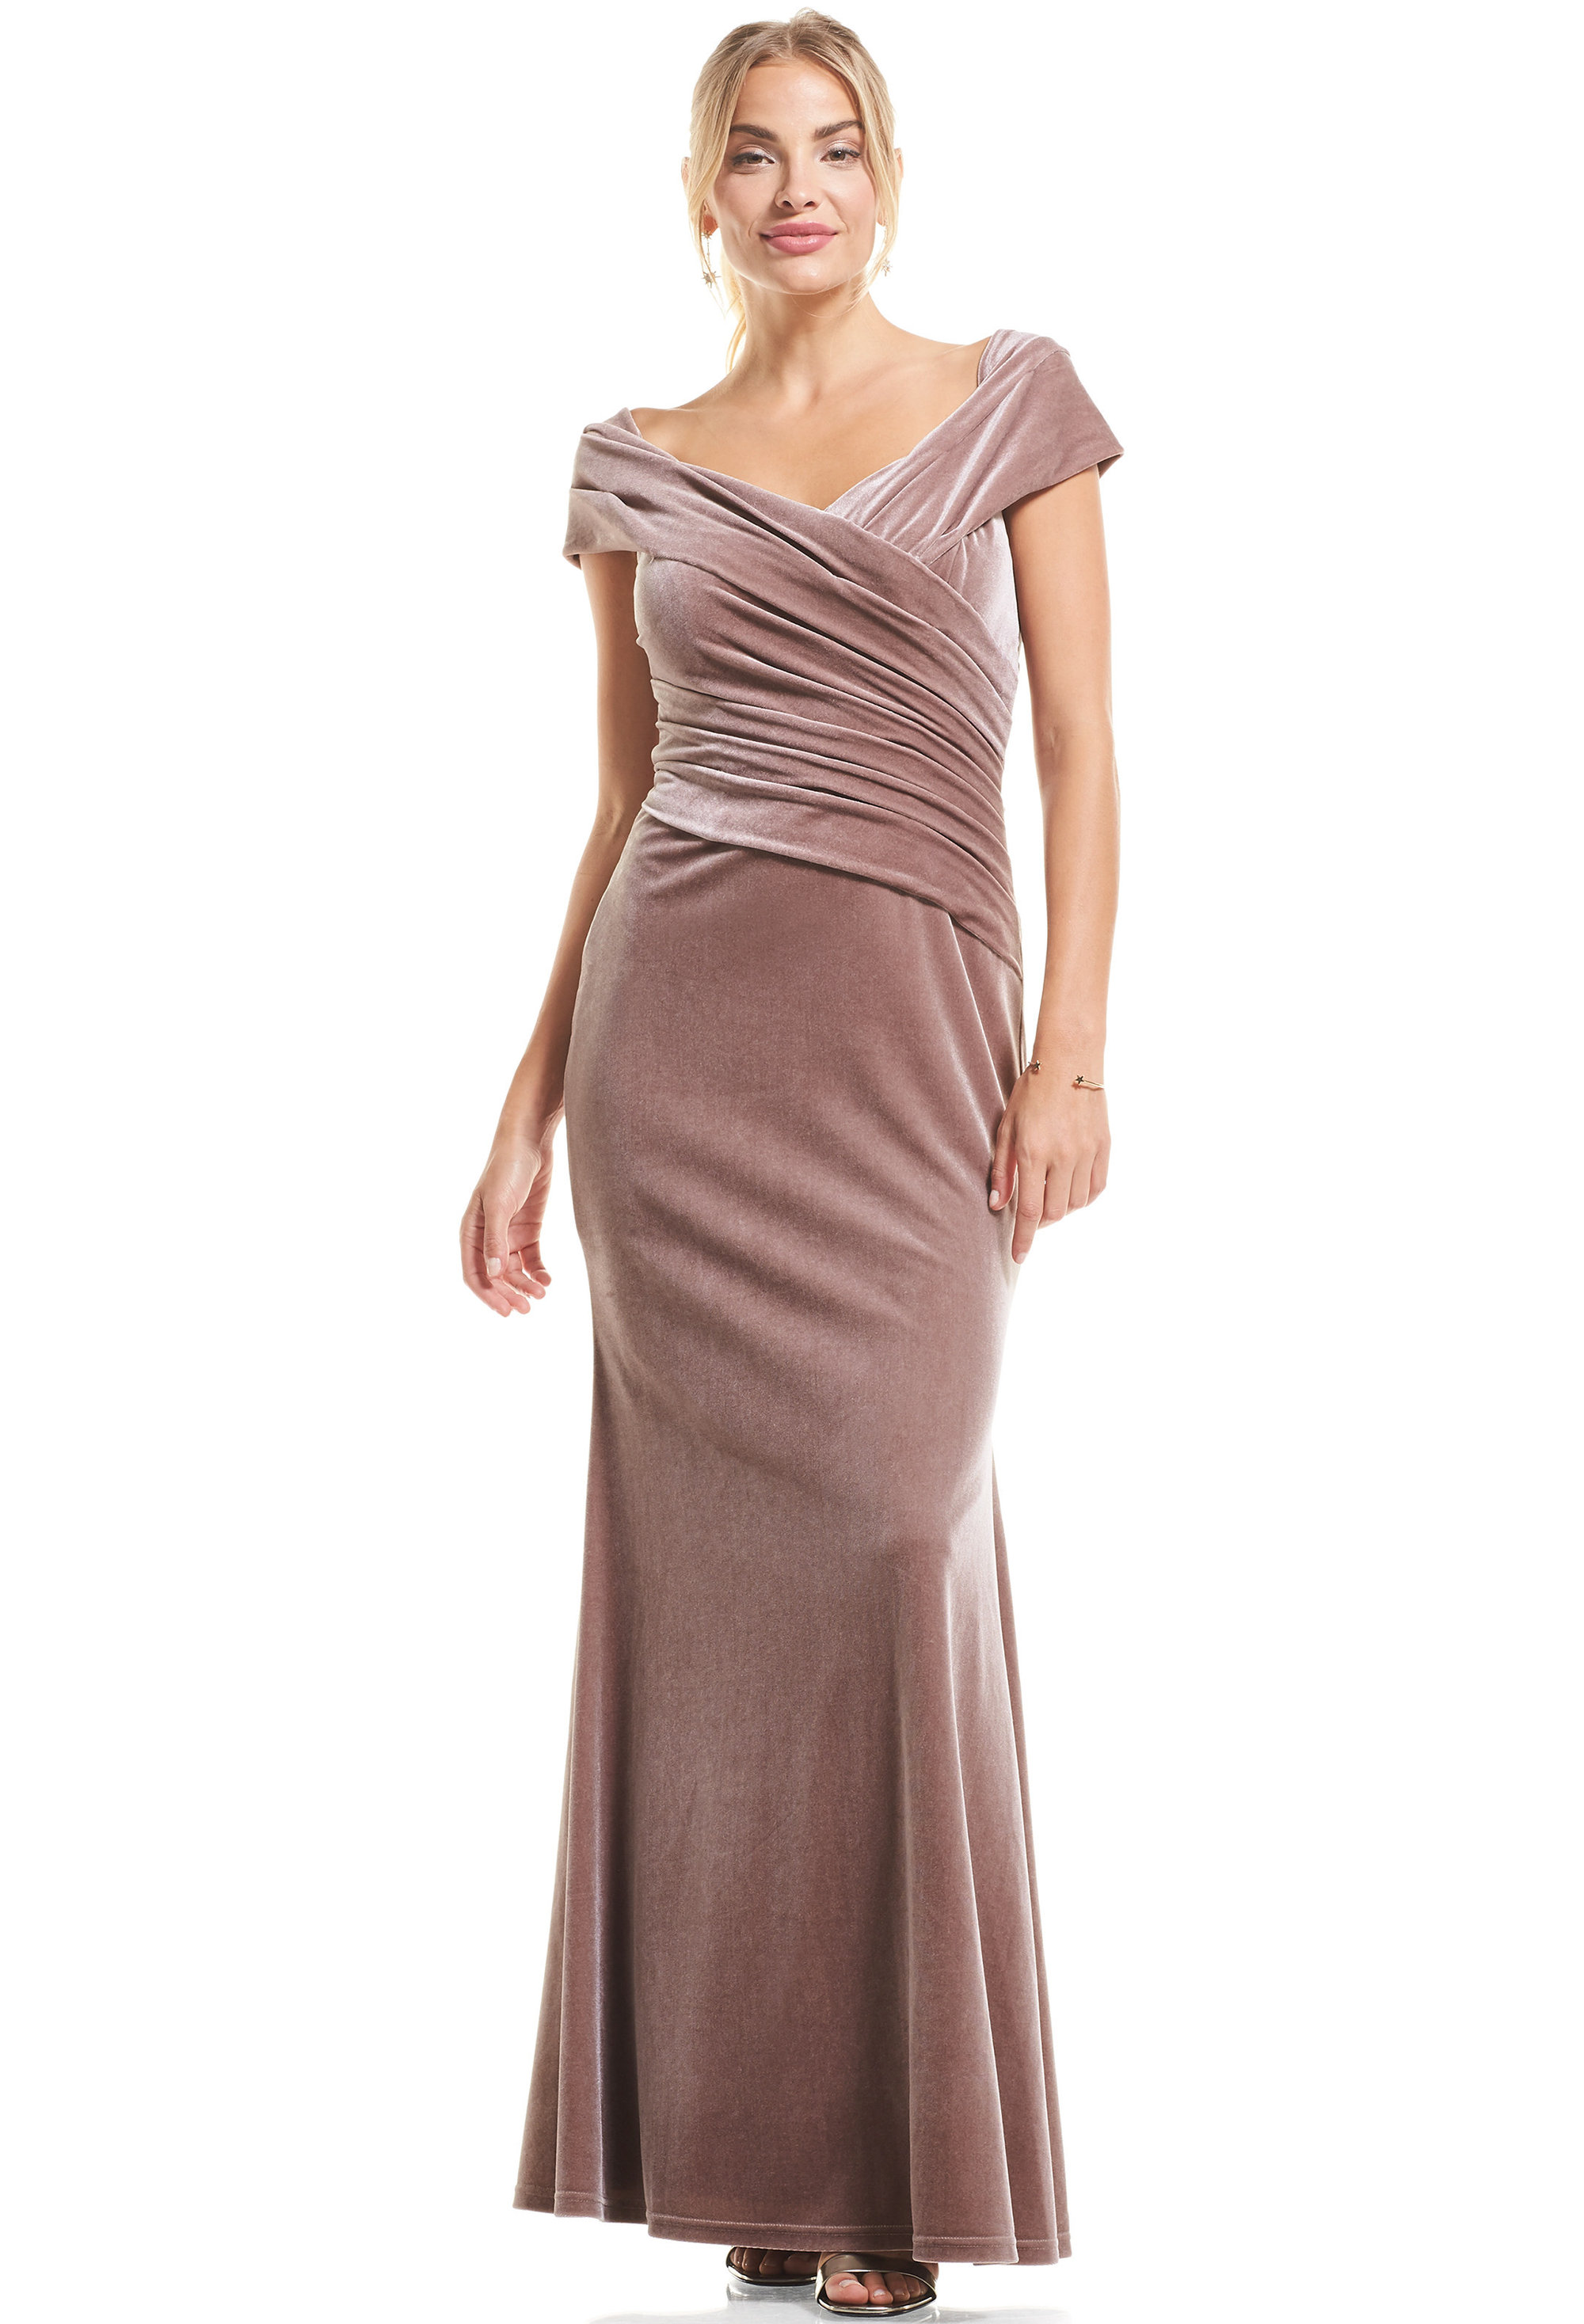 Bill Levkoff DUSTY ROSE Stretch Velvet Cap Sleeve A-Line gown, $119.00 Front